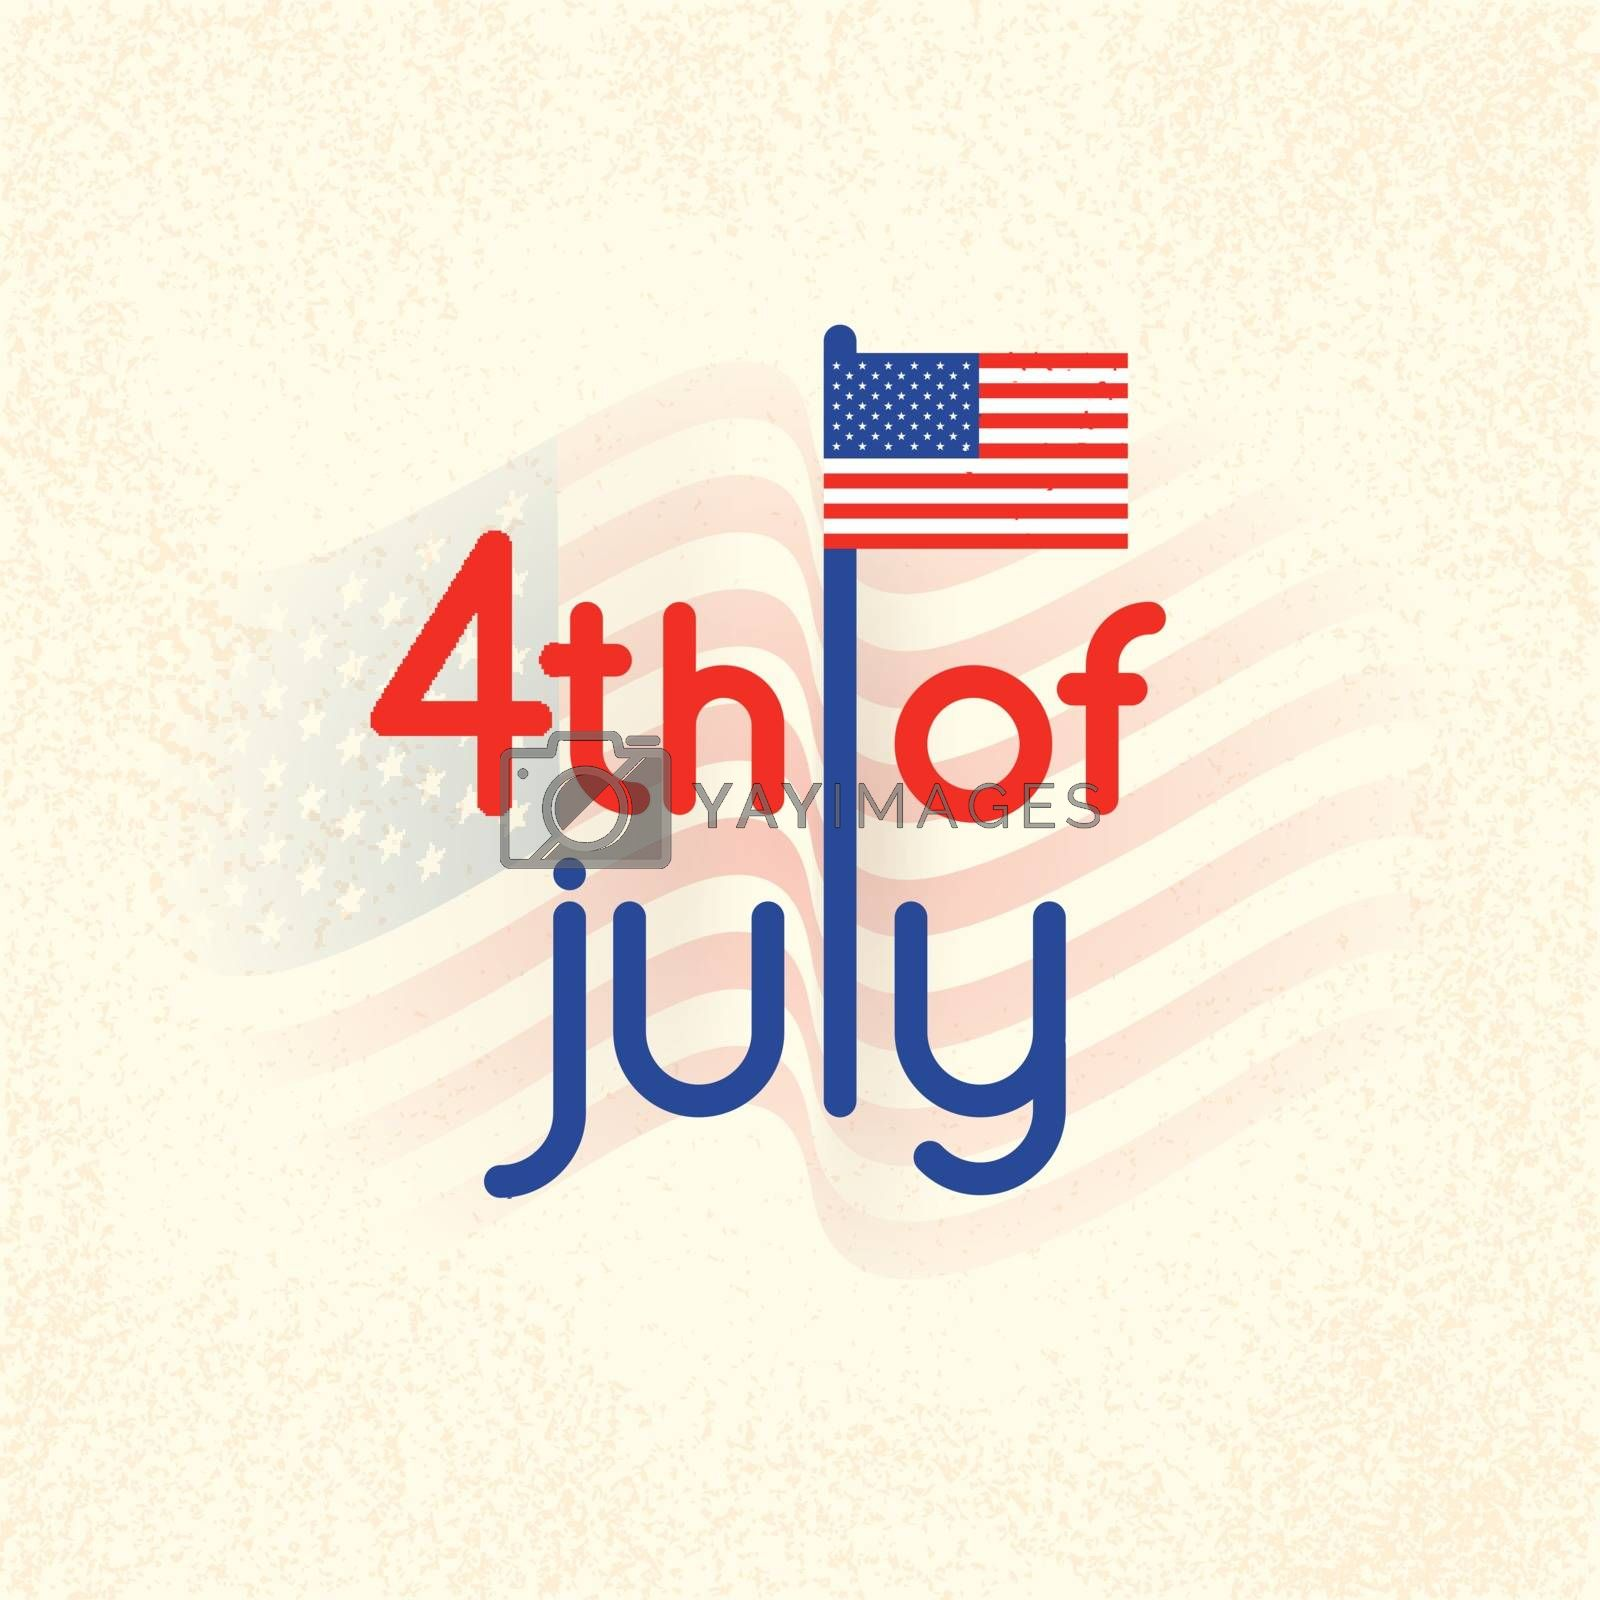 Creative poster or banner design, typography text 4th of july with American flag.